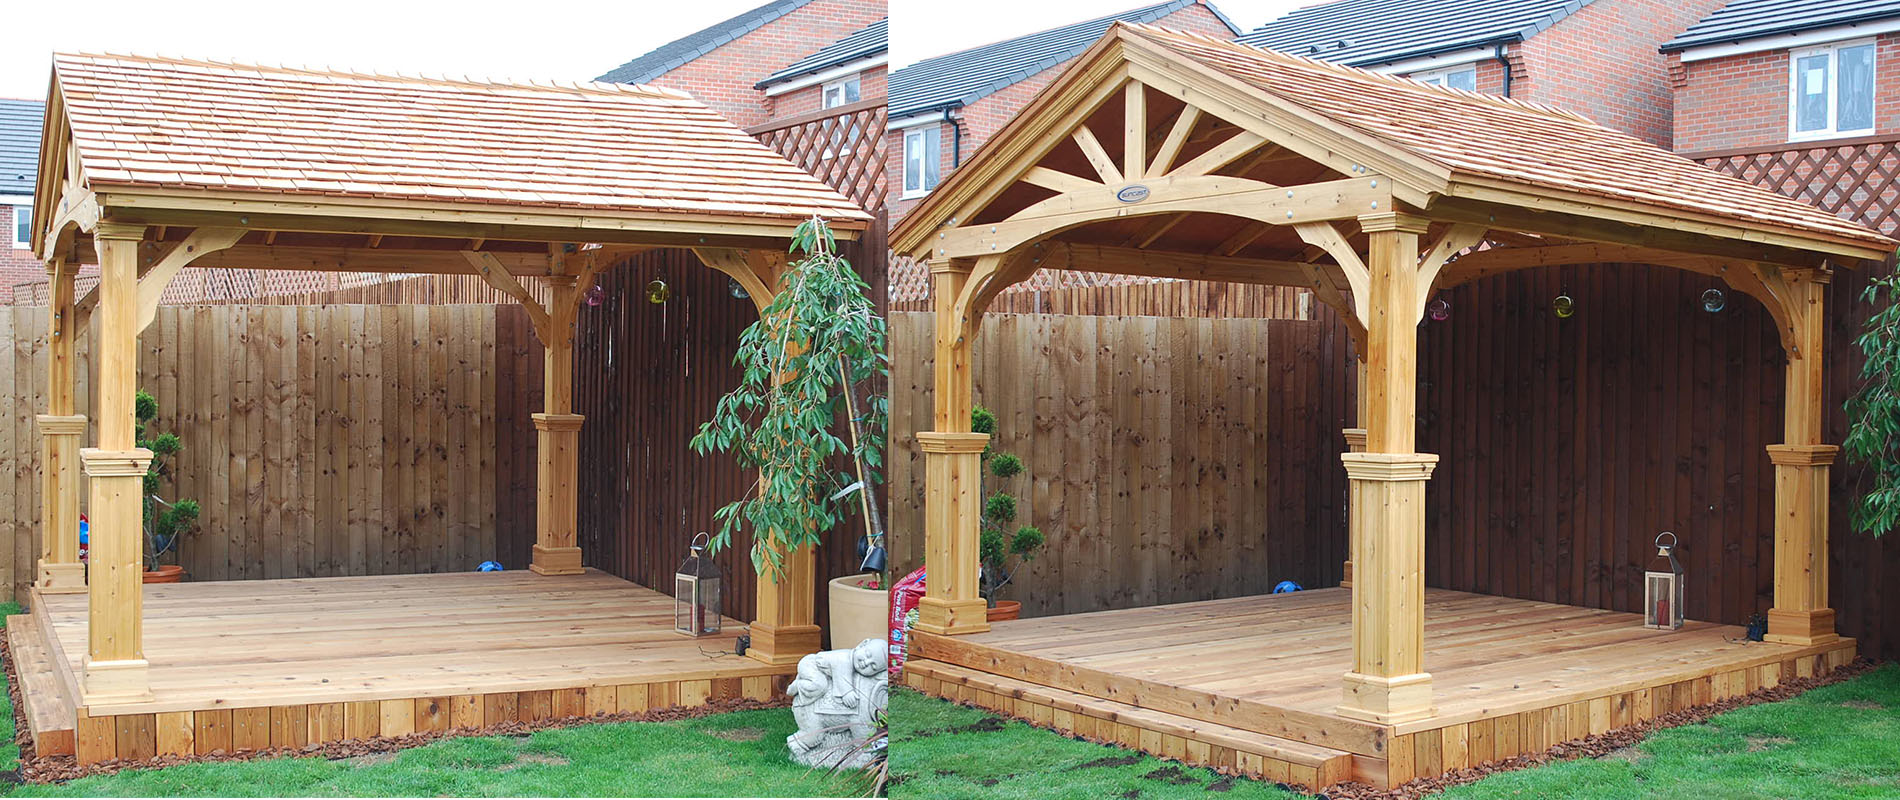 Cedar Pavilion Receives Deck And Roofing To Suit Silva Timber